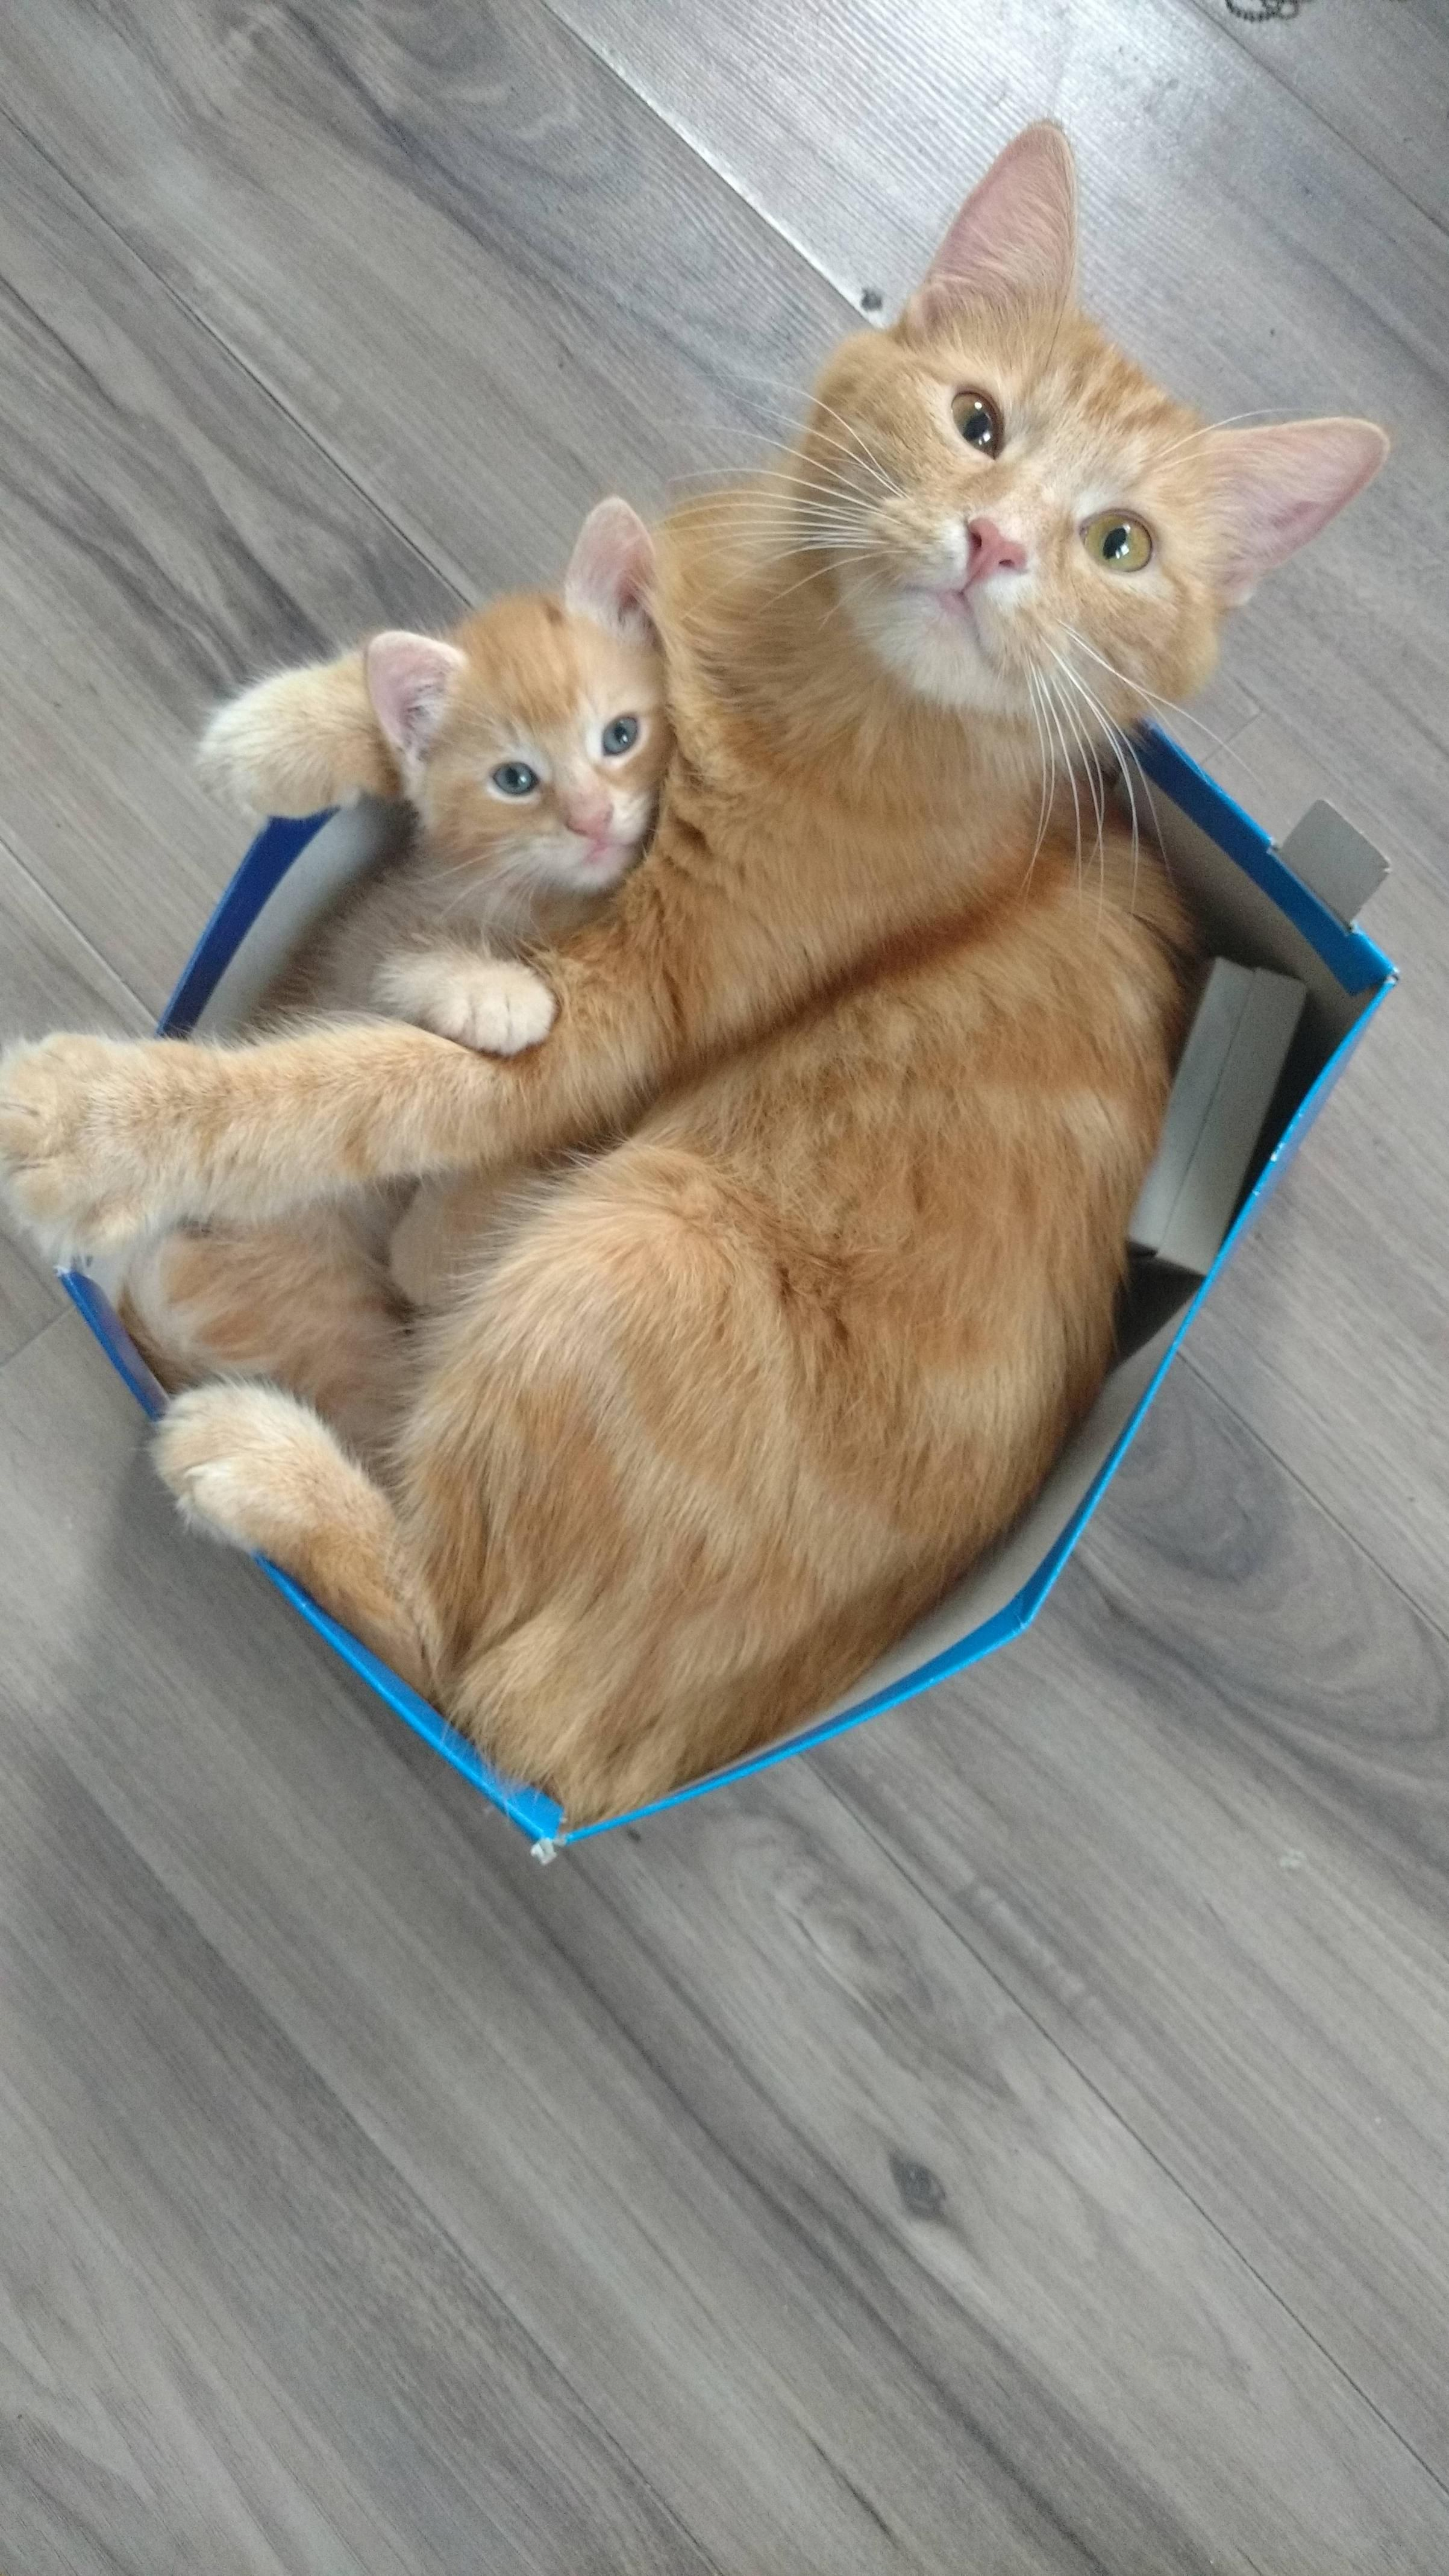 Just Woke Up To These Two Mother And Son Imgur Do You Suppose You Could Locate A Slightly Larger Box Please Cute Cats Cats Kittens